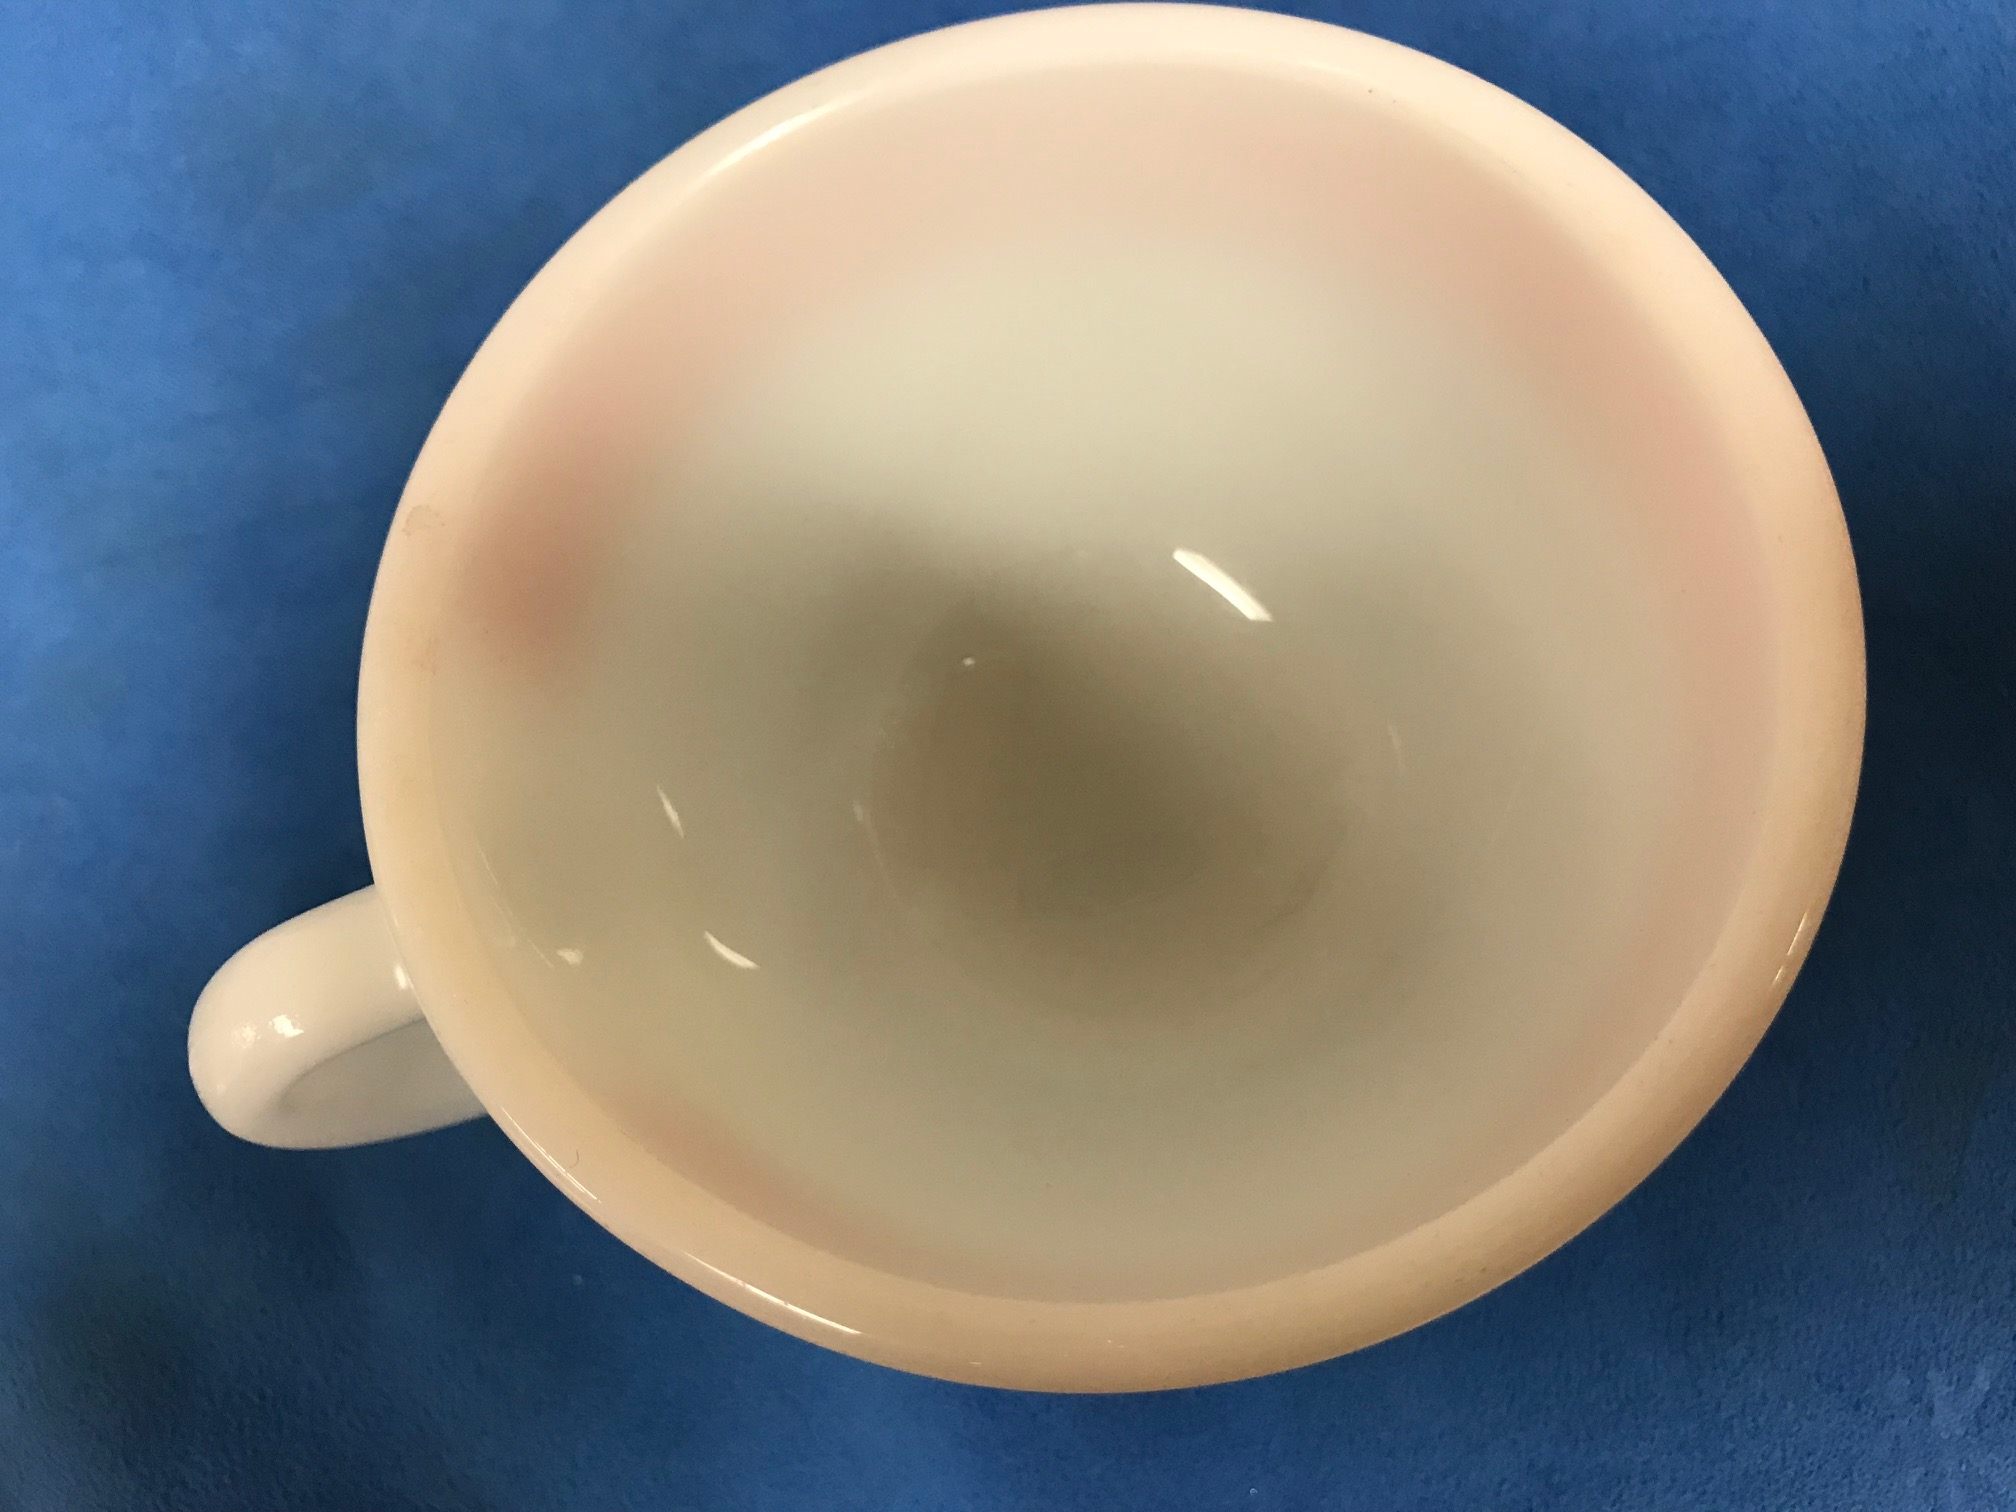 Vintage Pyrex Teacup With Pink Stripe: Positive for 249,700 ppm Lead